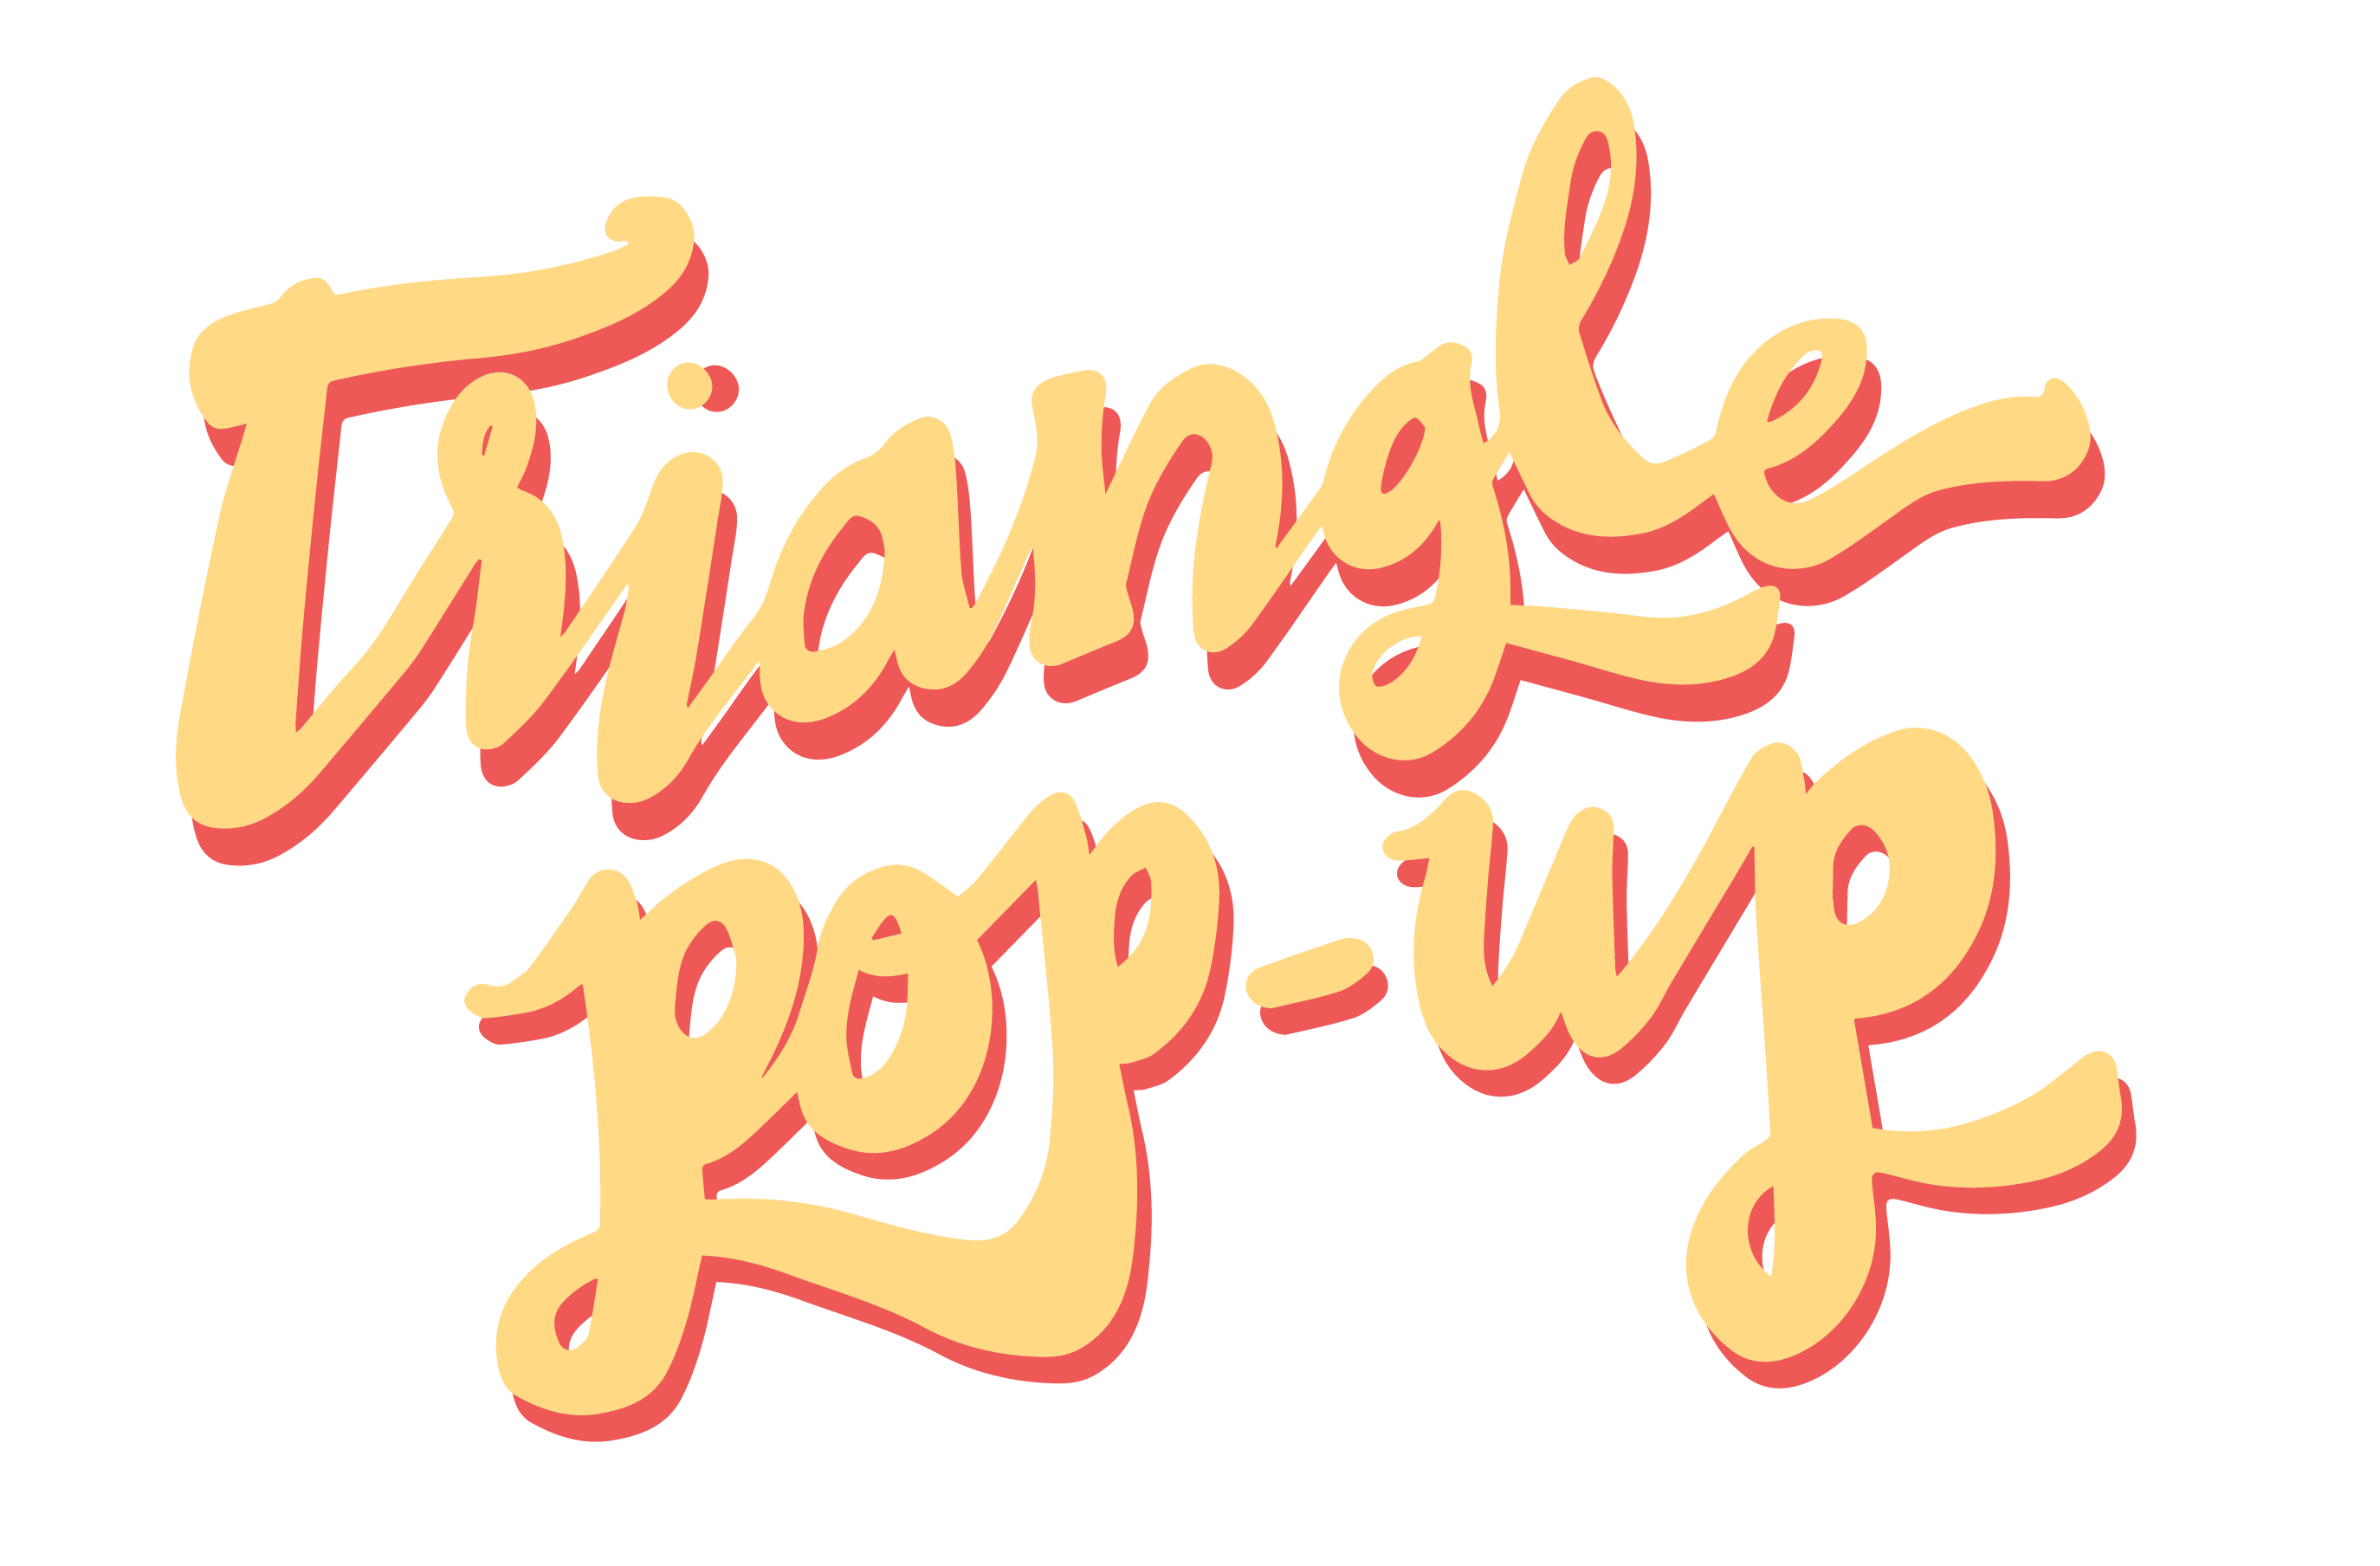 Triangle Pop-Up Market